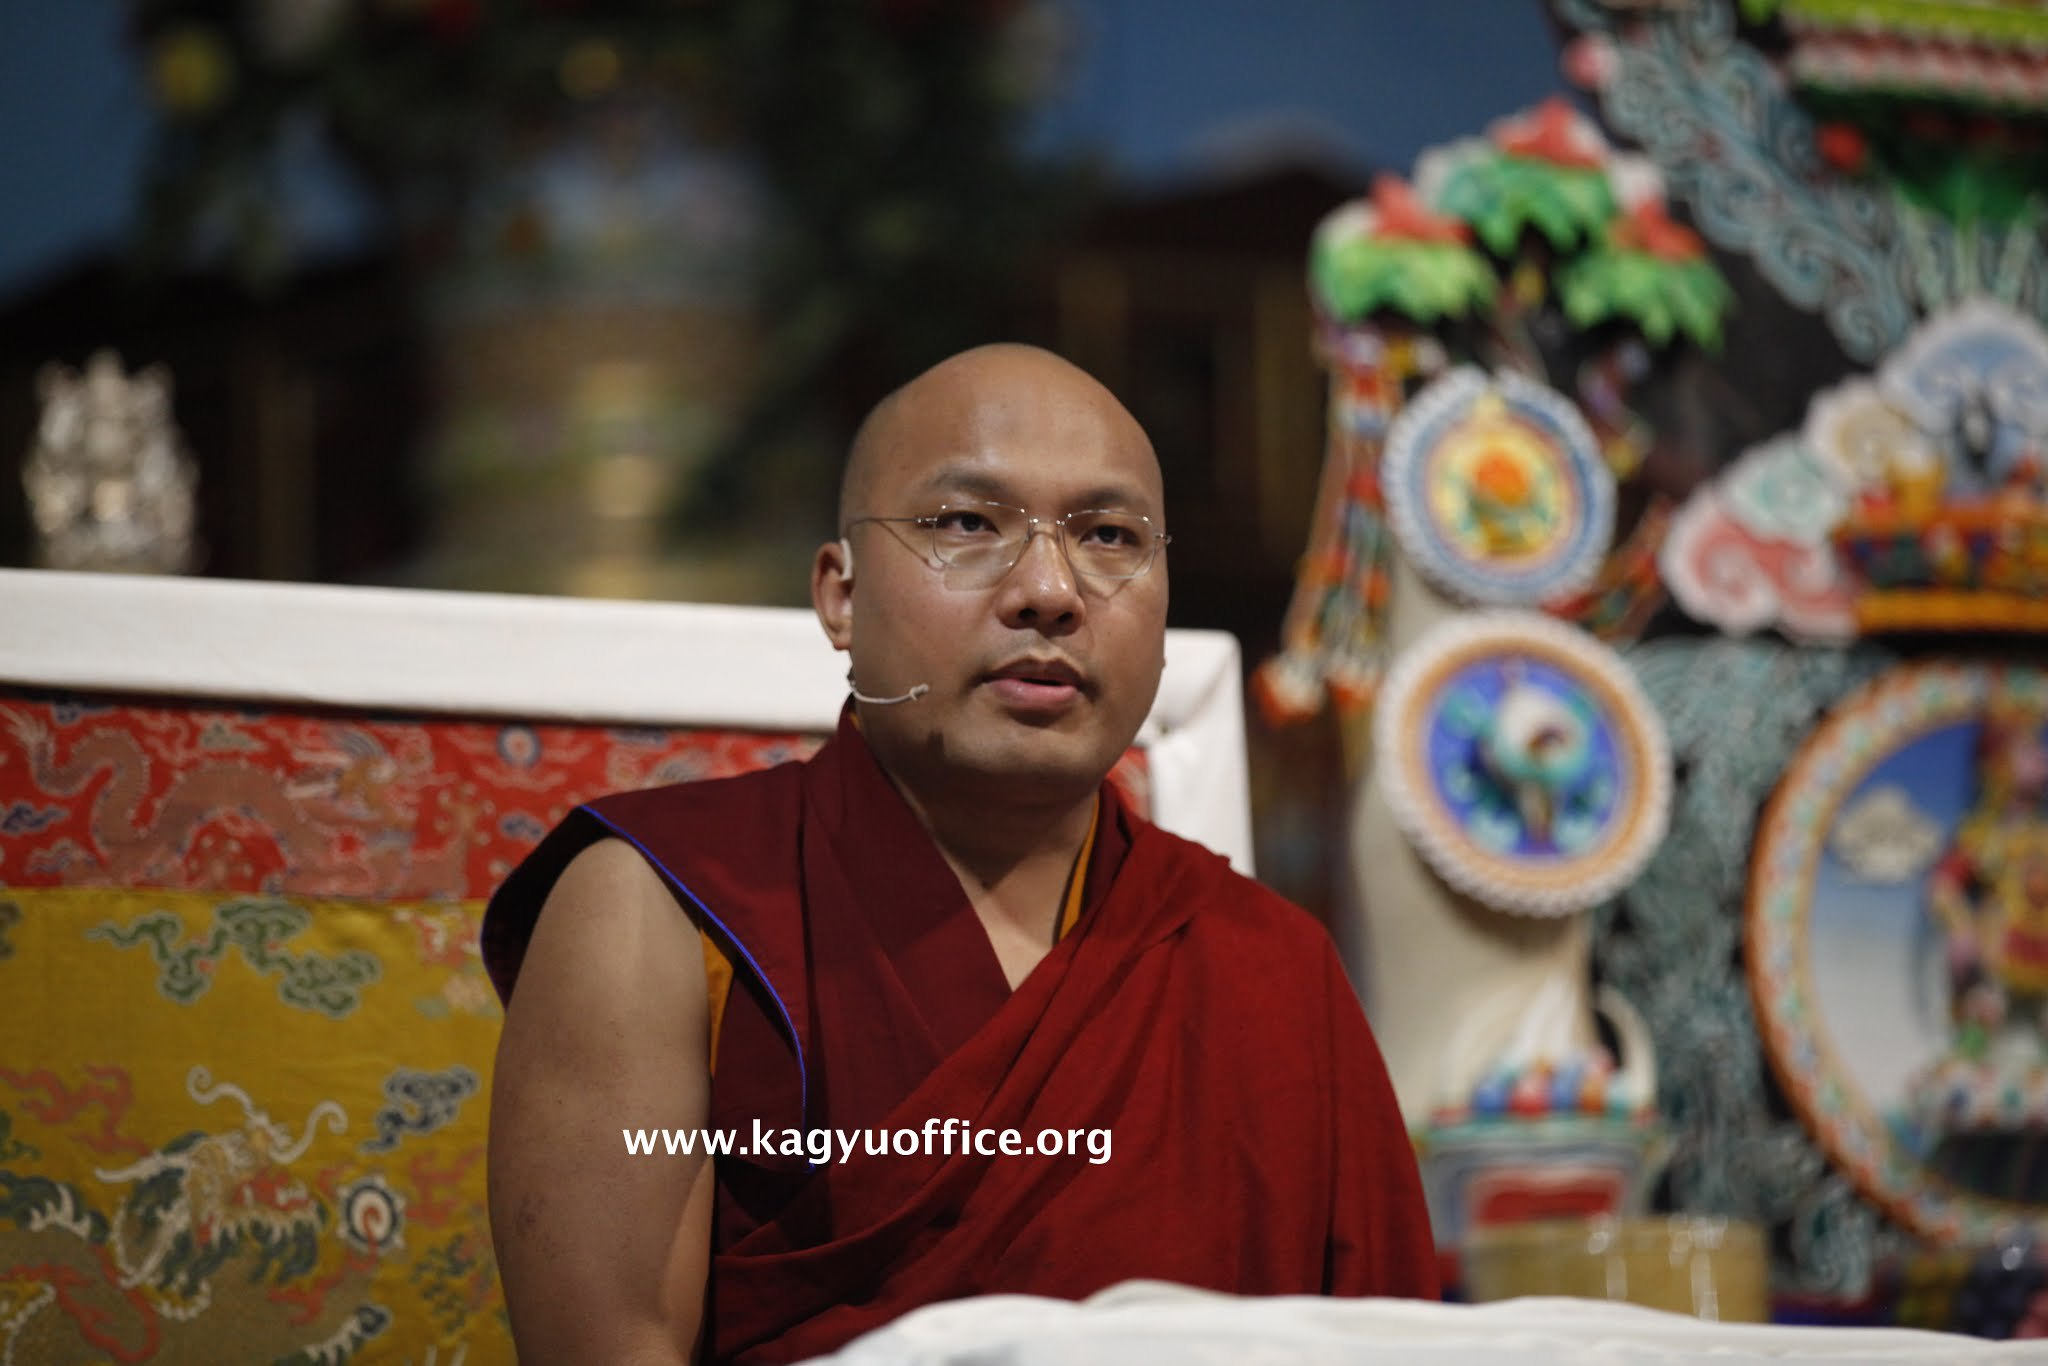 Gyalwang Karmapa Makes Historic Announcement on Restoring Nuns' Ordination